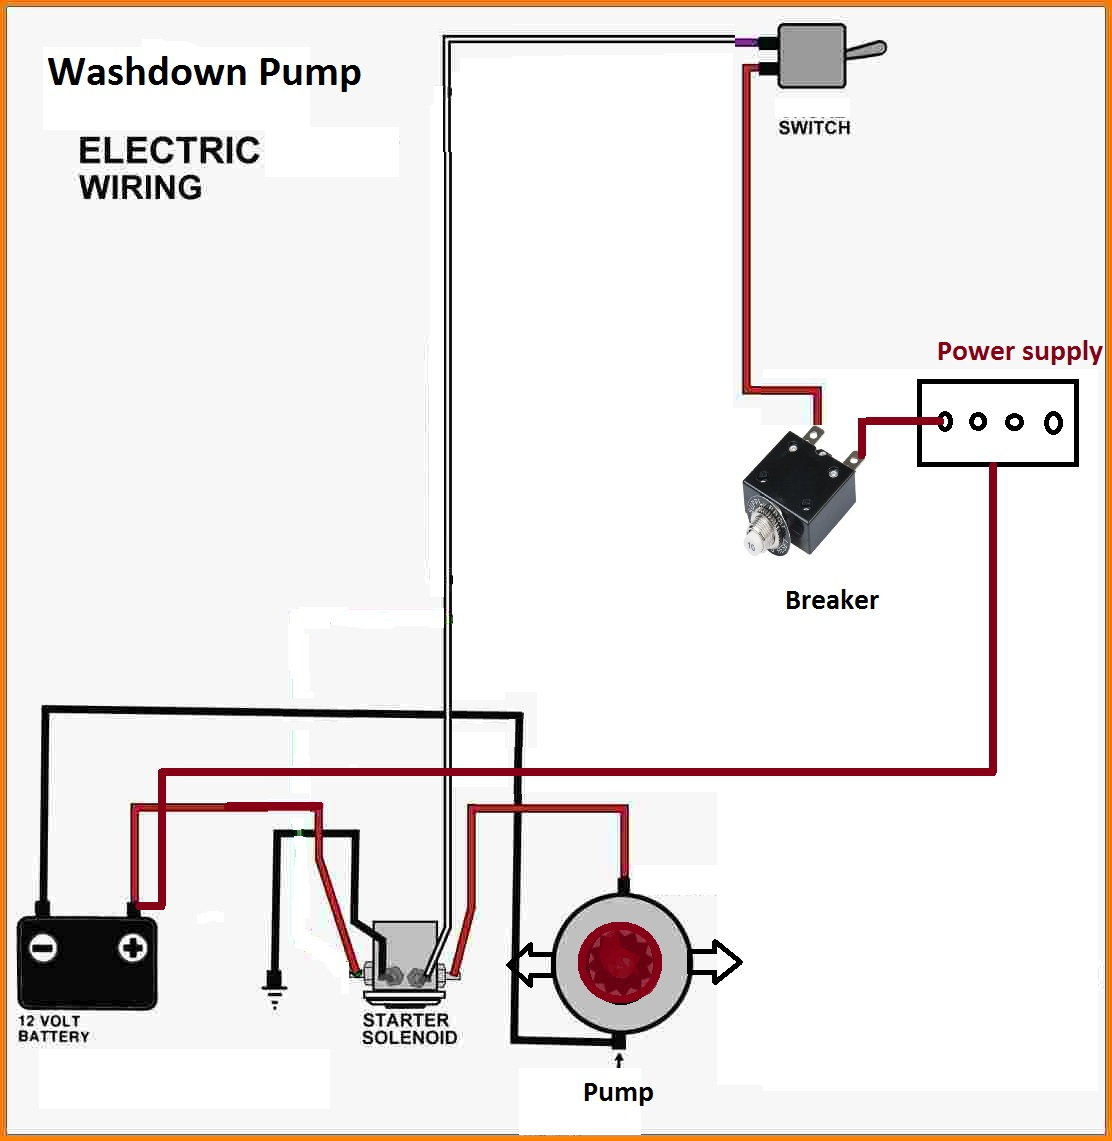 Raw-water Washdown Trips Circuit Breaker - The Hull Truth